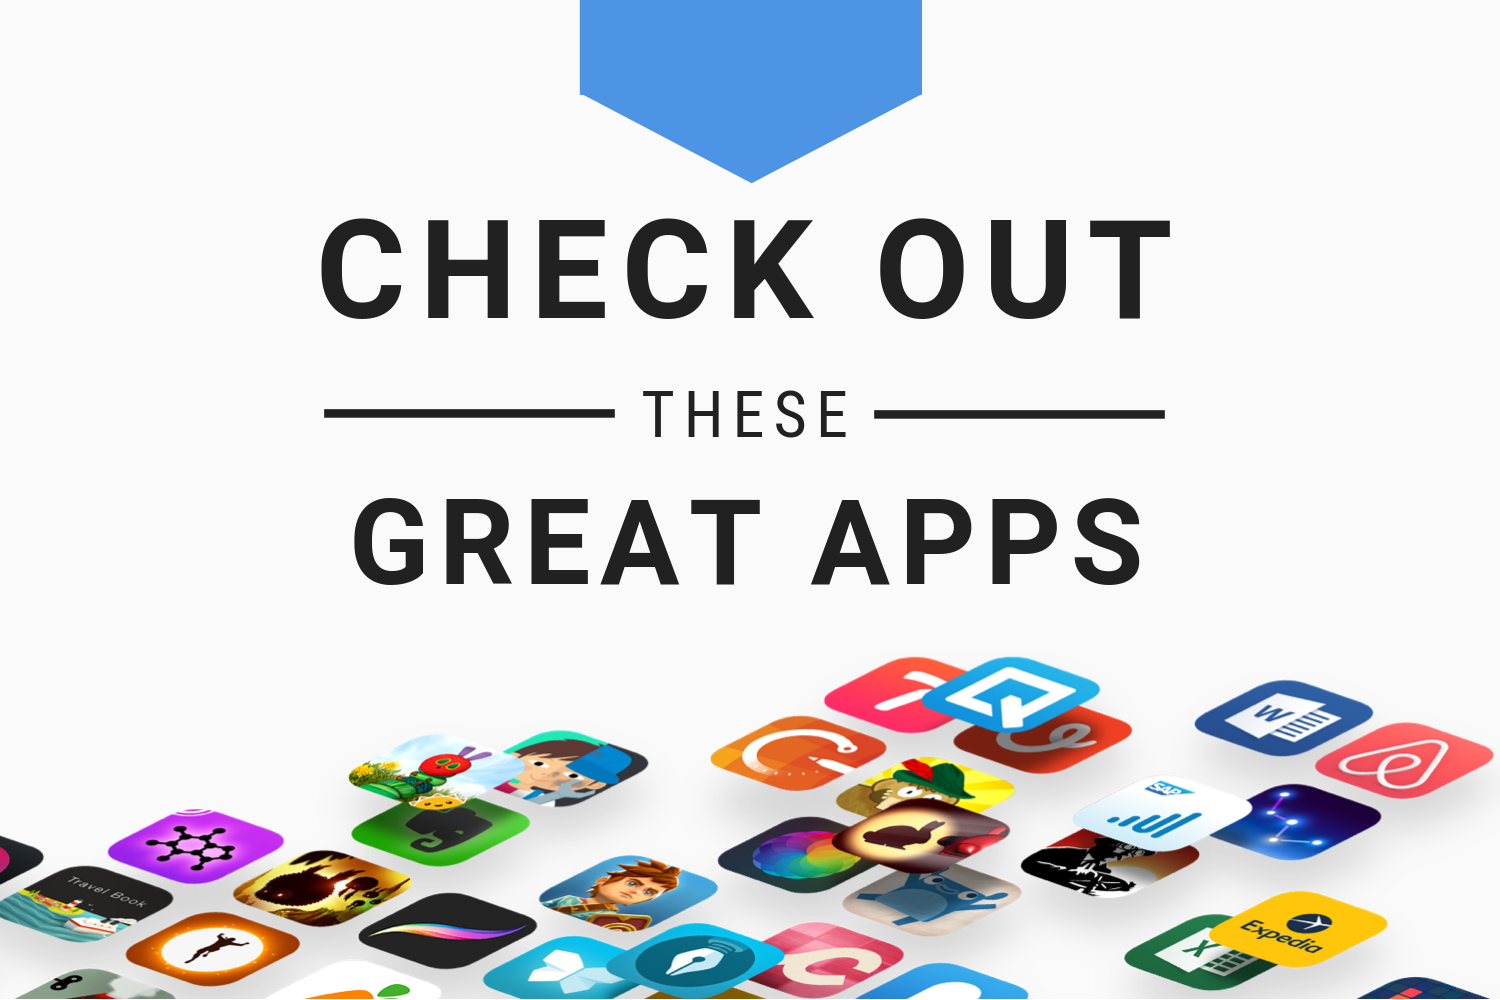 Classical, LSTN, Graspp, and other apps to check out this weekend